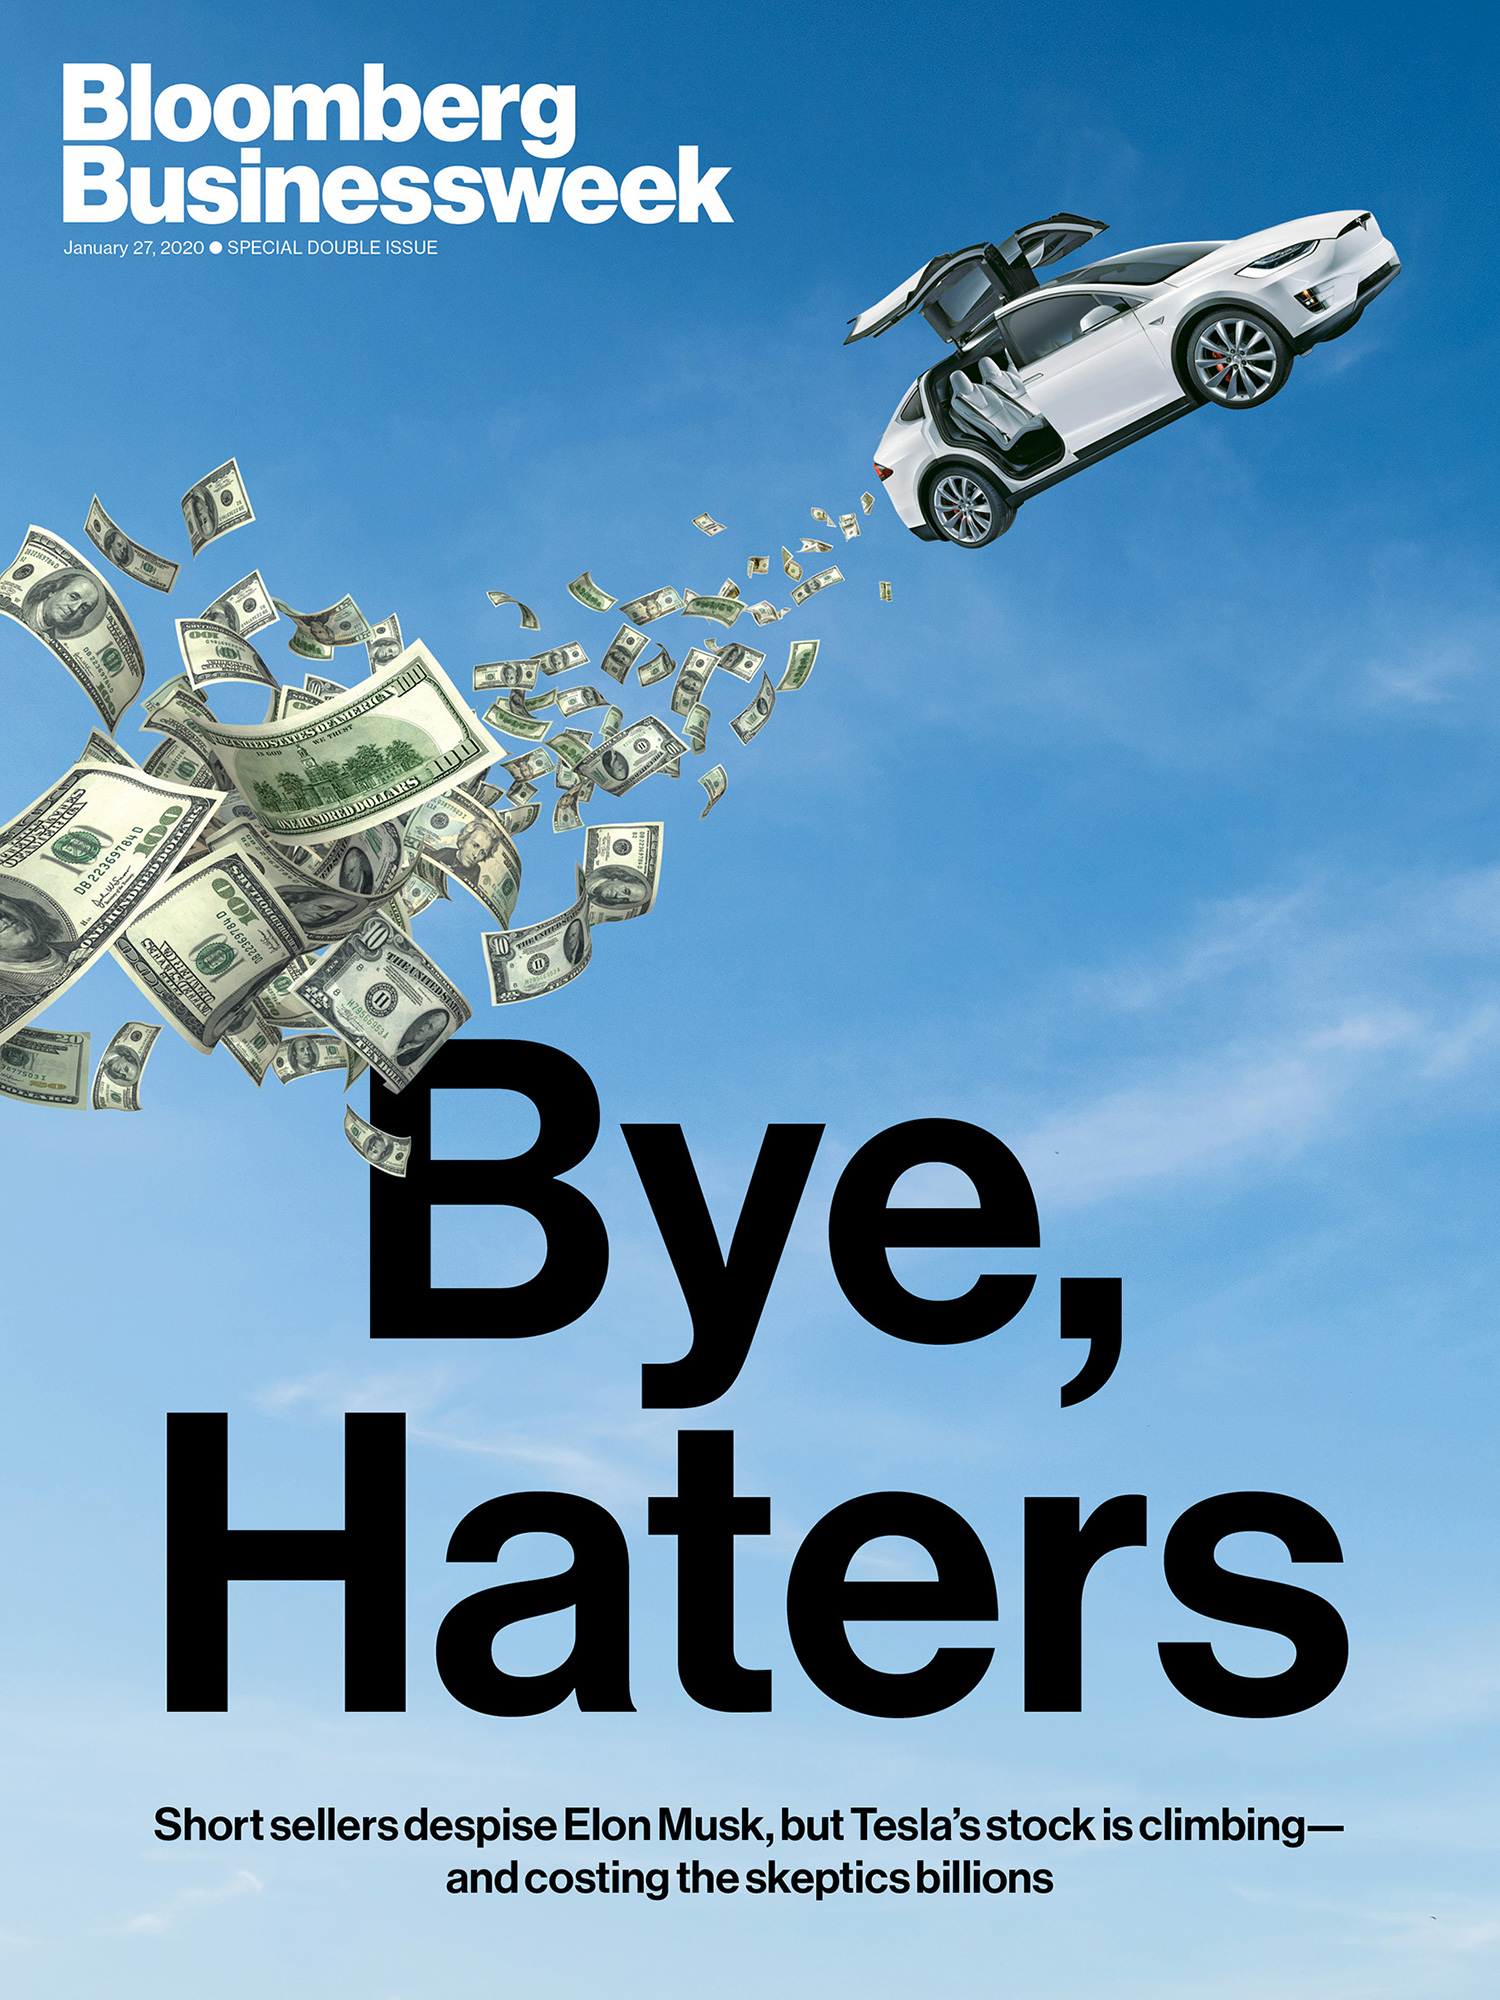 Bloomberg Business Week Tesla - Elon Musk - Bye, haters